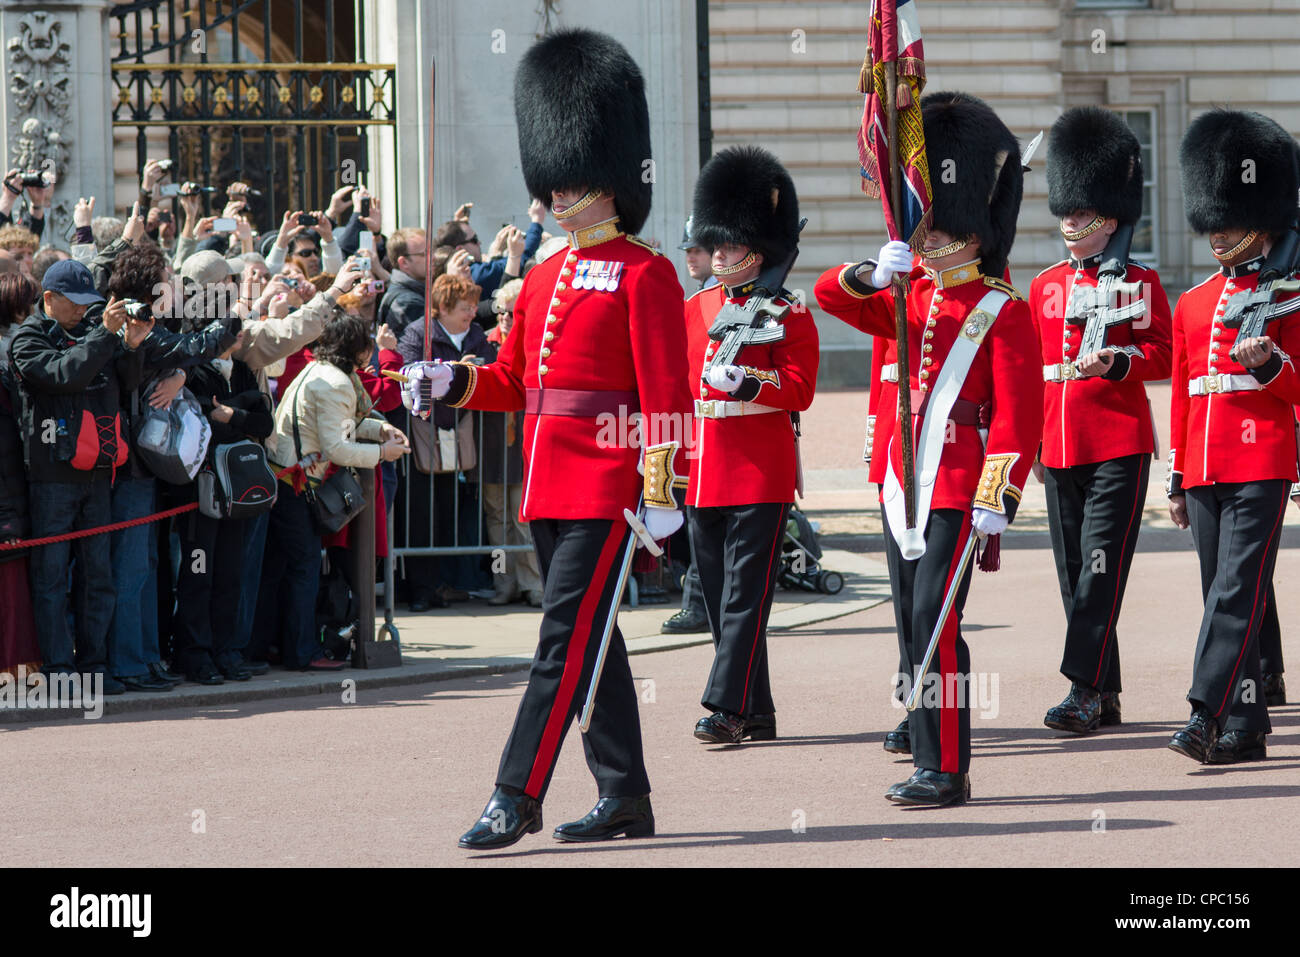 Changing of the guard at Buckingham palace. London. UK. - Stock Image